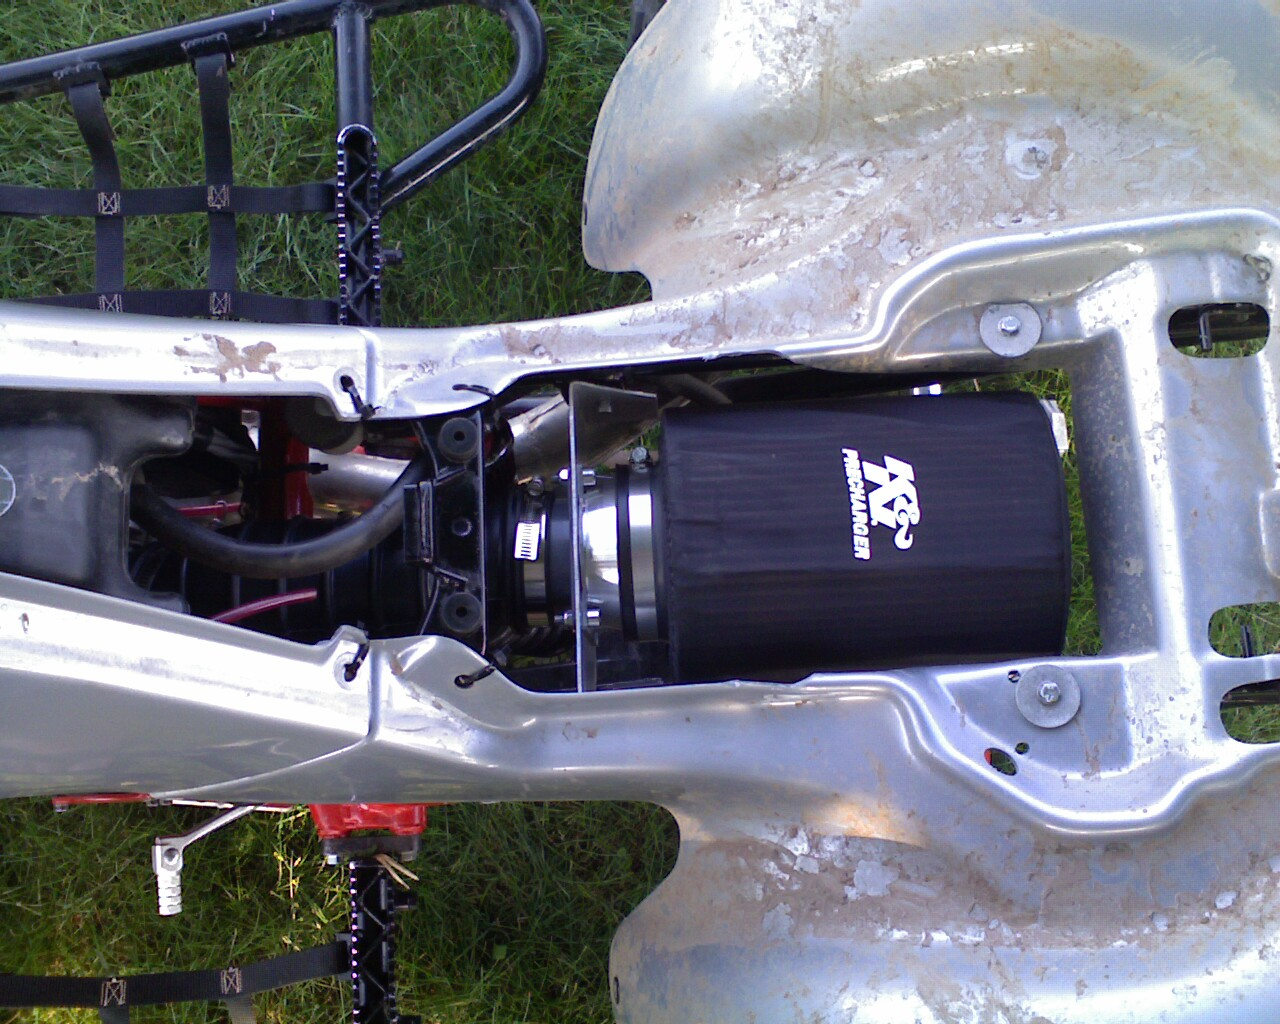 Z400 Custom Intake, Post Your Pics Of Intake - Suzuki Z400 Forum ...